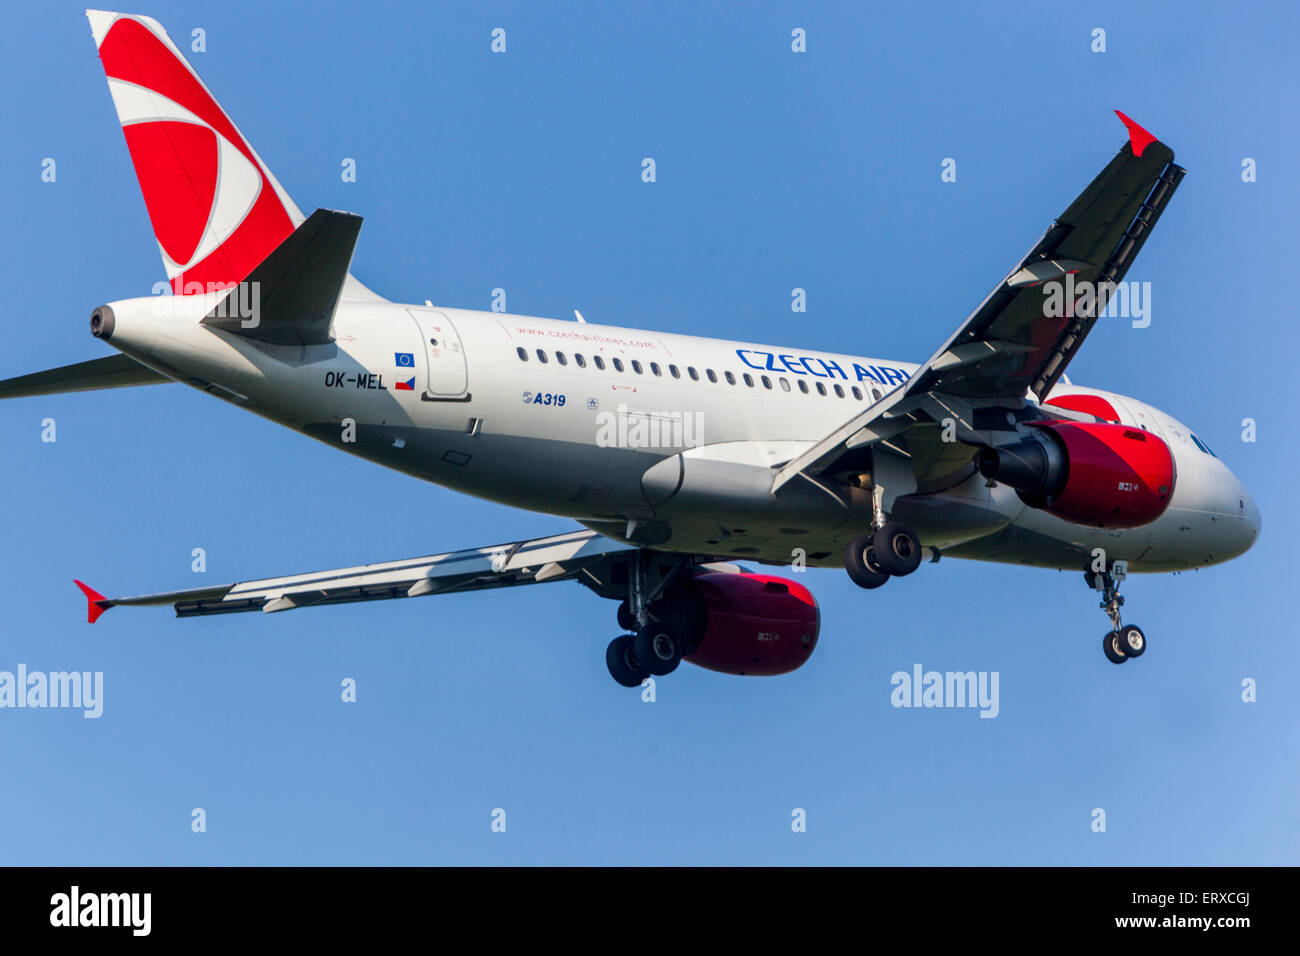 Airbus A319 operated by Czech Airlines on approach for landing Prague, Czech Republic - Stock Image